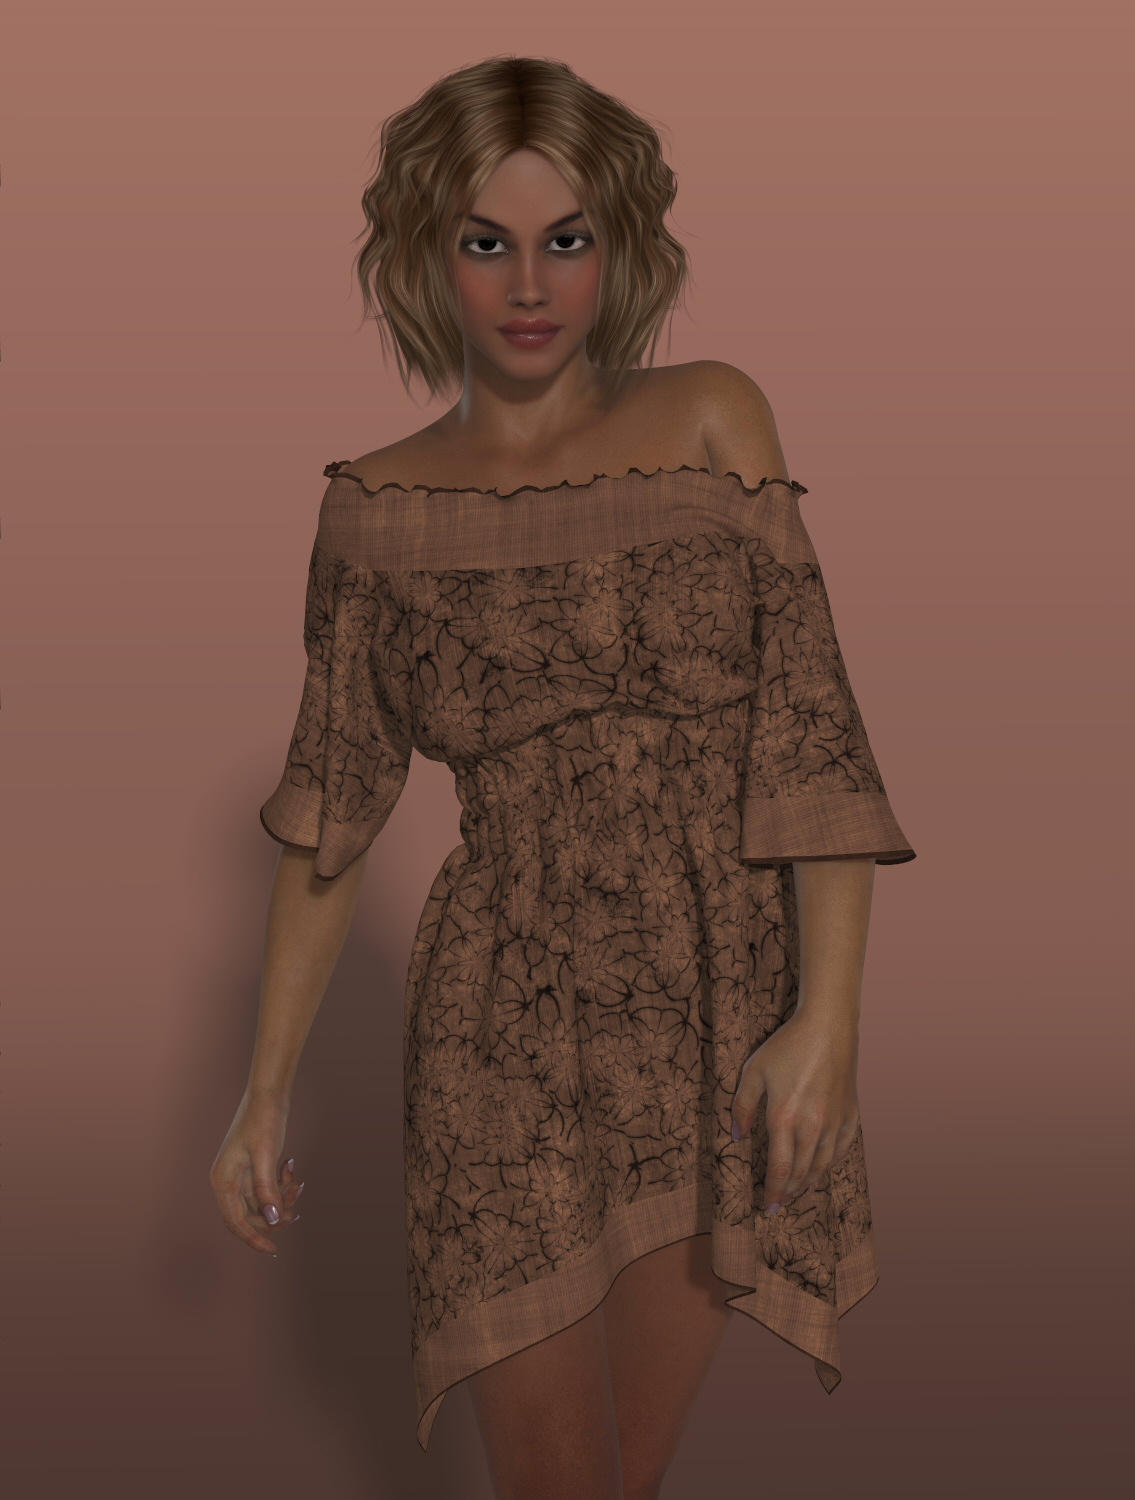 Dynamics 11 - Boho Dress for Victoria 4 by Lully